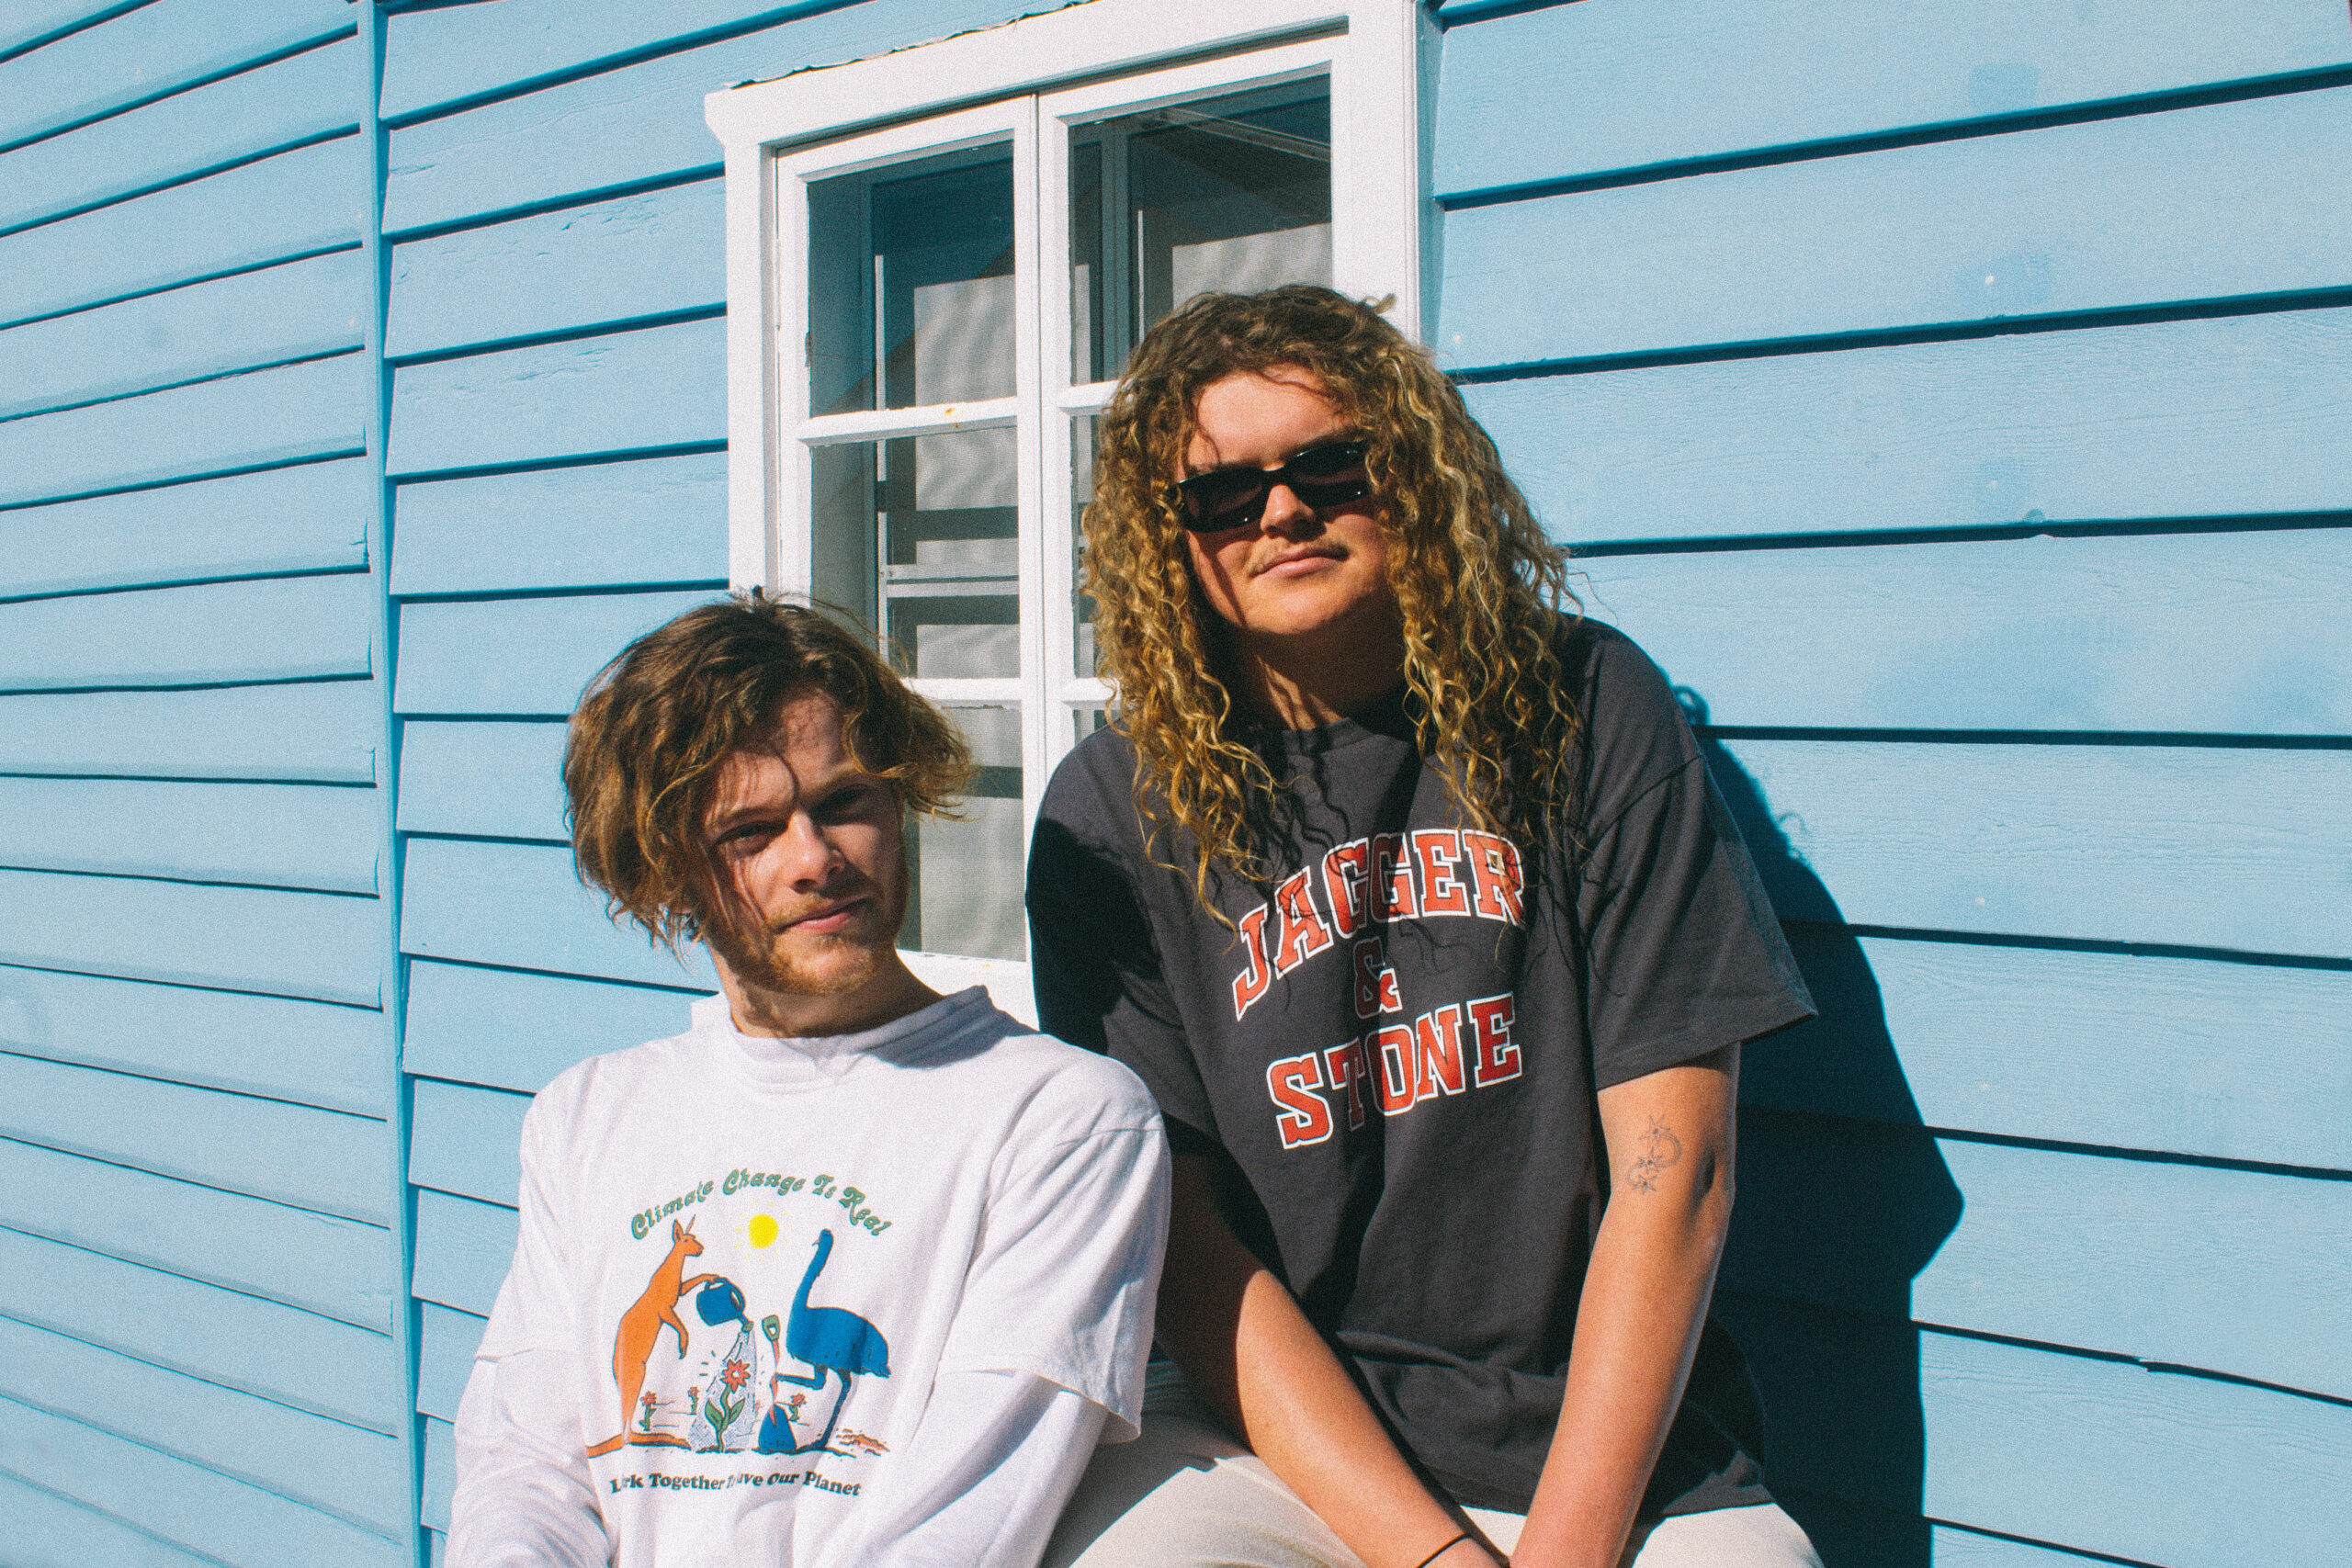 Jervis Bay duo Debbies unveil video for their current single 'Sinner'.